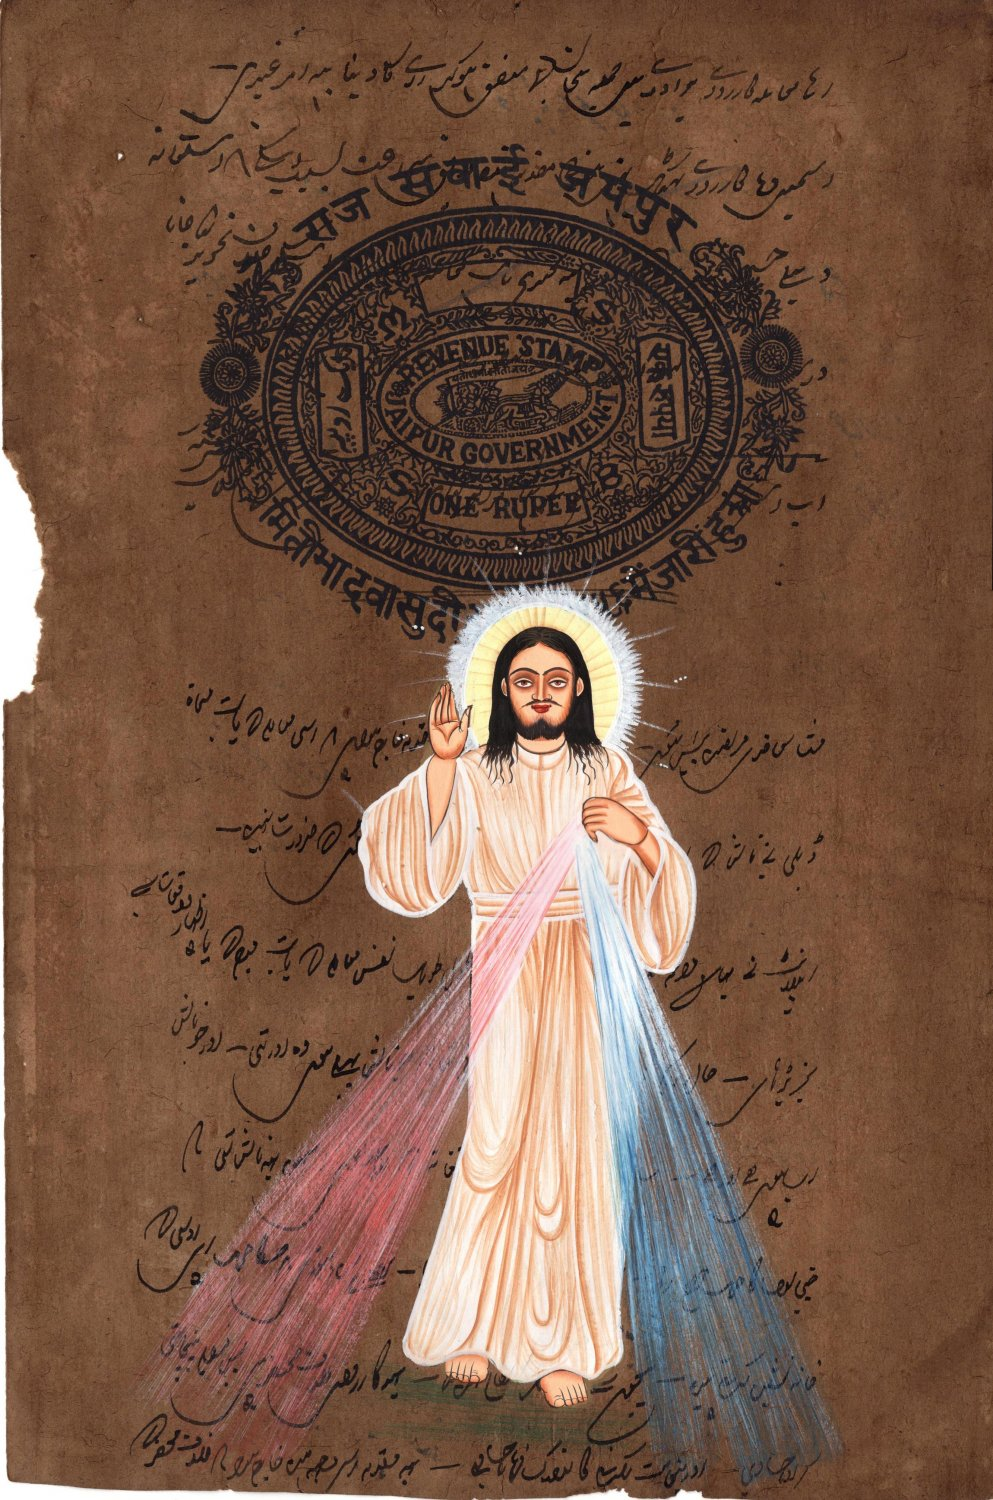 Christian Jesus Christ Art Rare Handmade Watercolor Painting on Old Stamp Paper